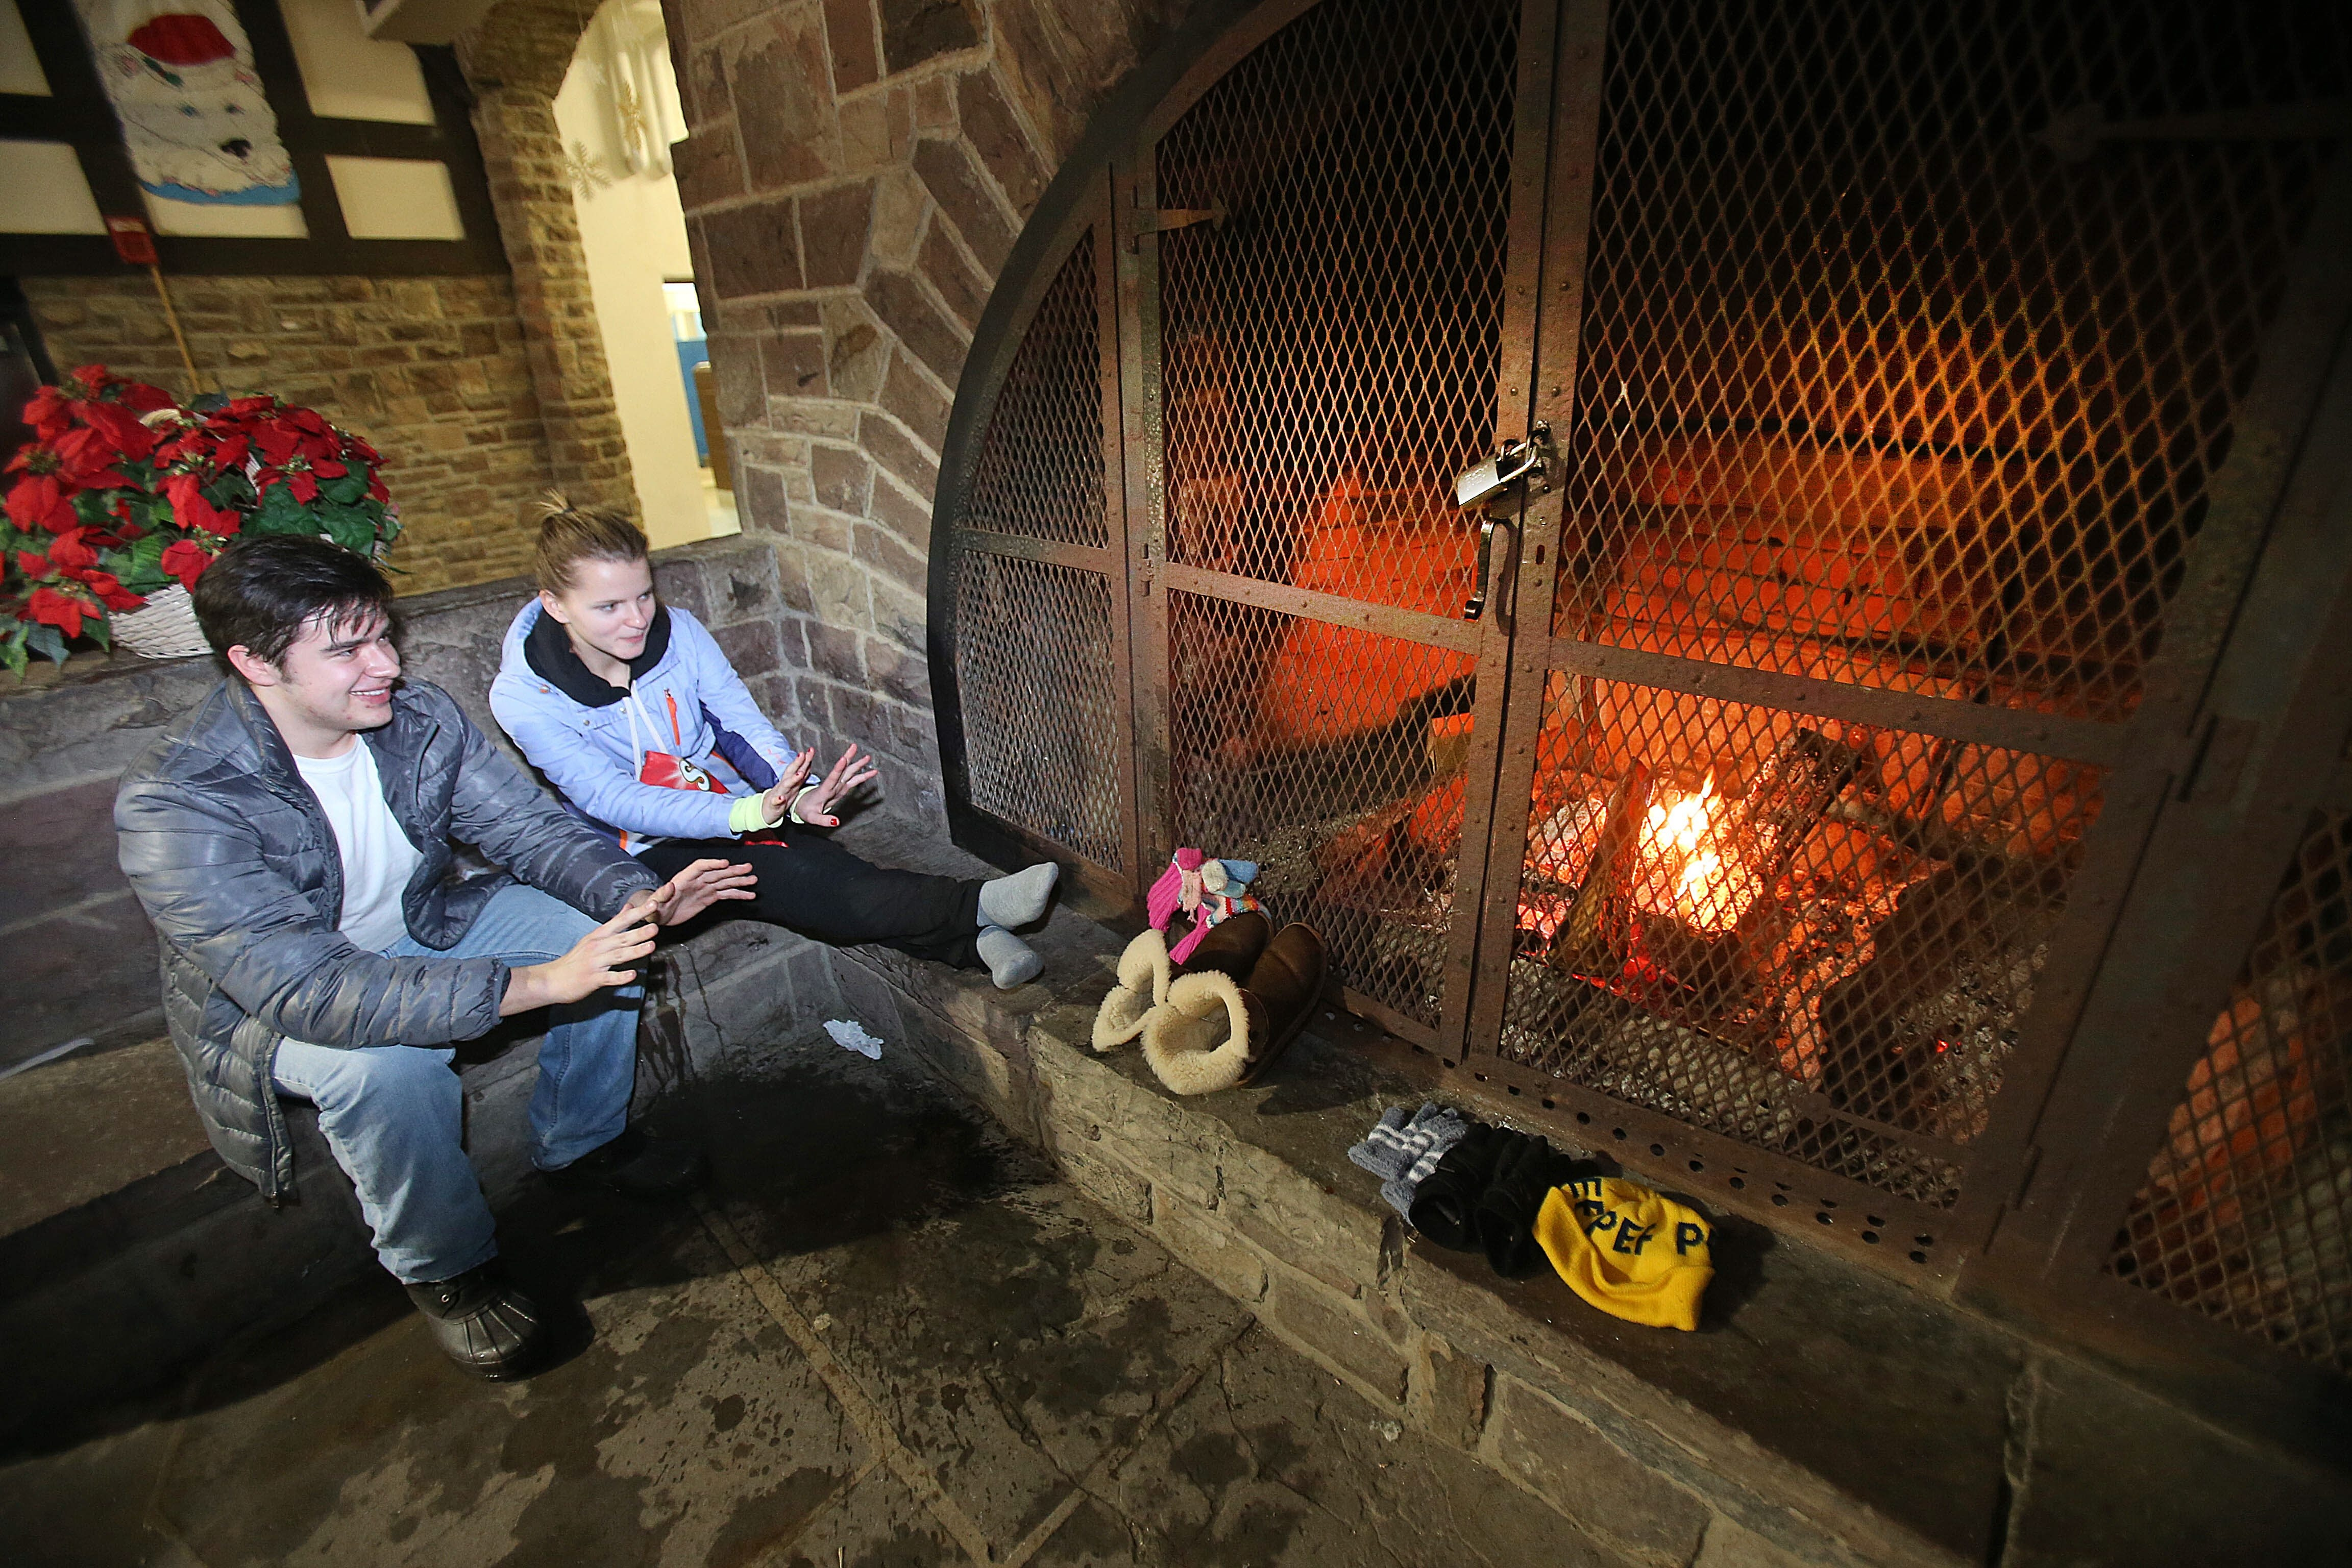 Vadim Fedoriskin, of Orchard Park, left, and Galina Zheliazniuk, of Amherst, stay warm. The fireplace at Chestnut Ridge Casino is a WNY favorite.  Sledders and family warm up after being outside on Friday, Dec. 27, 2013.  (Robert Kirkham/Buffalo News)